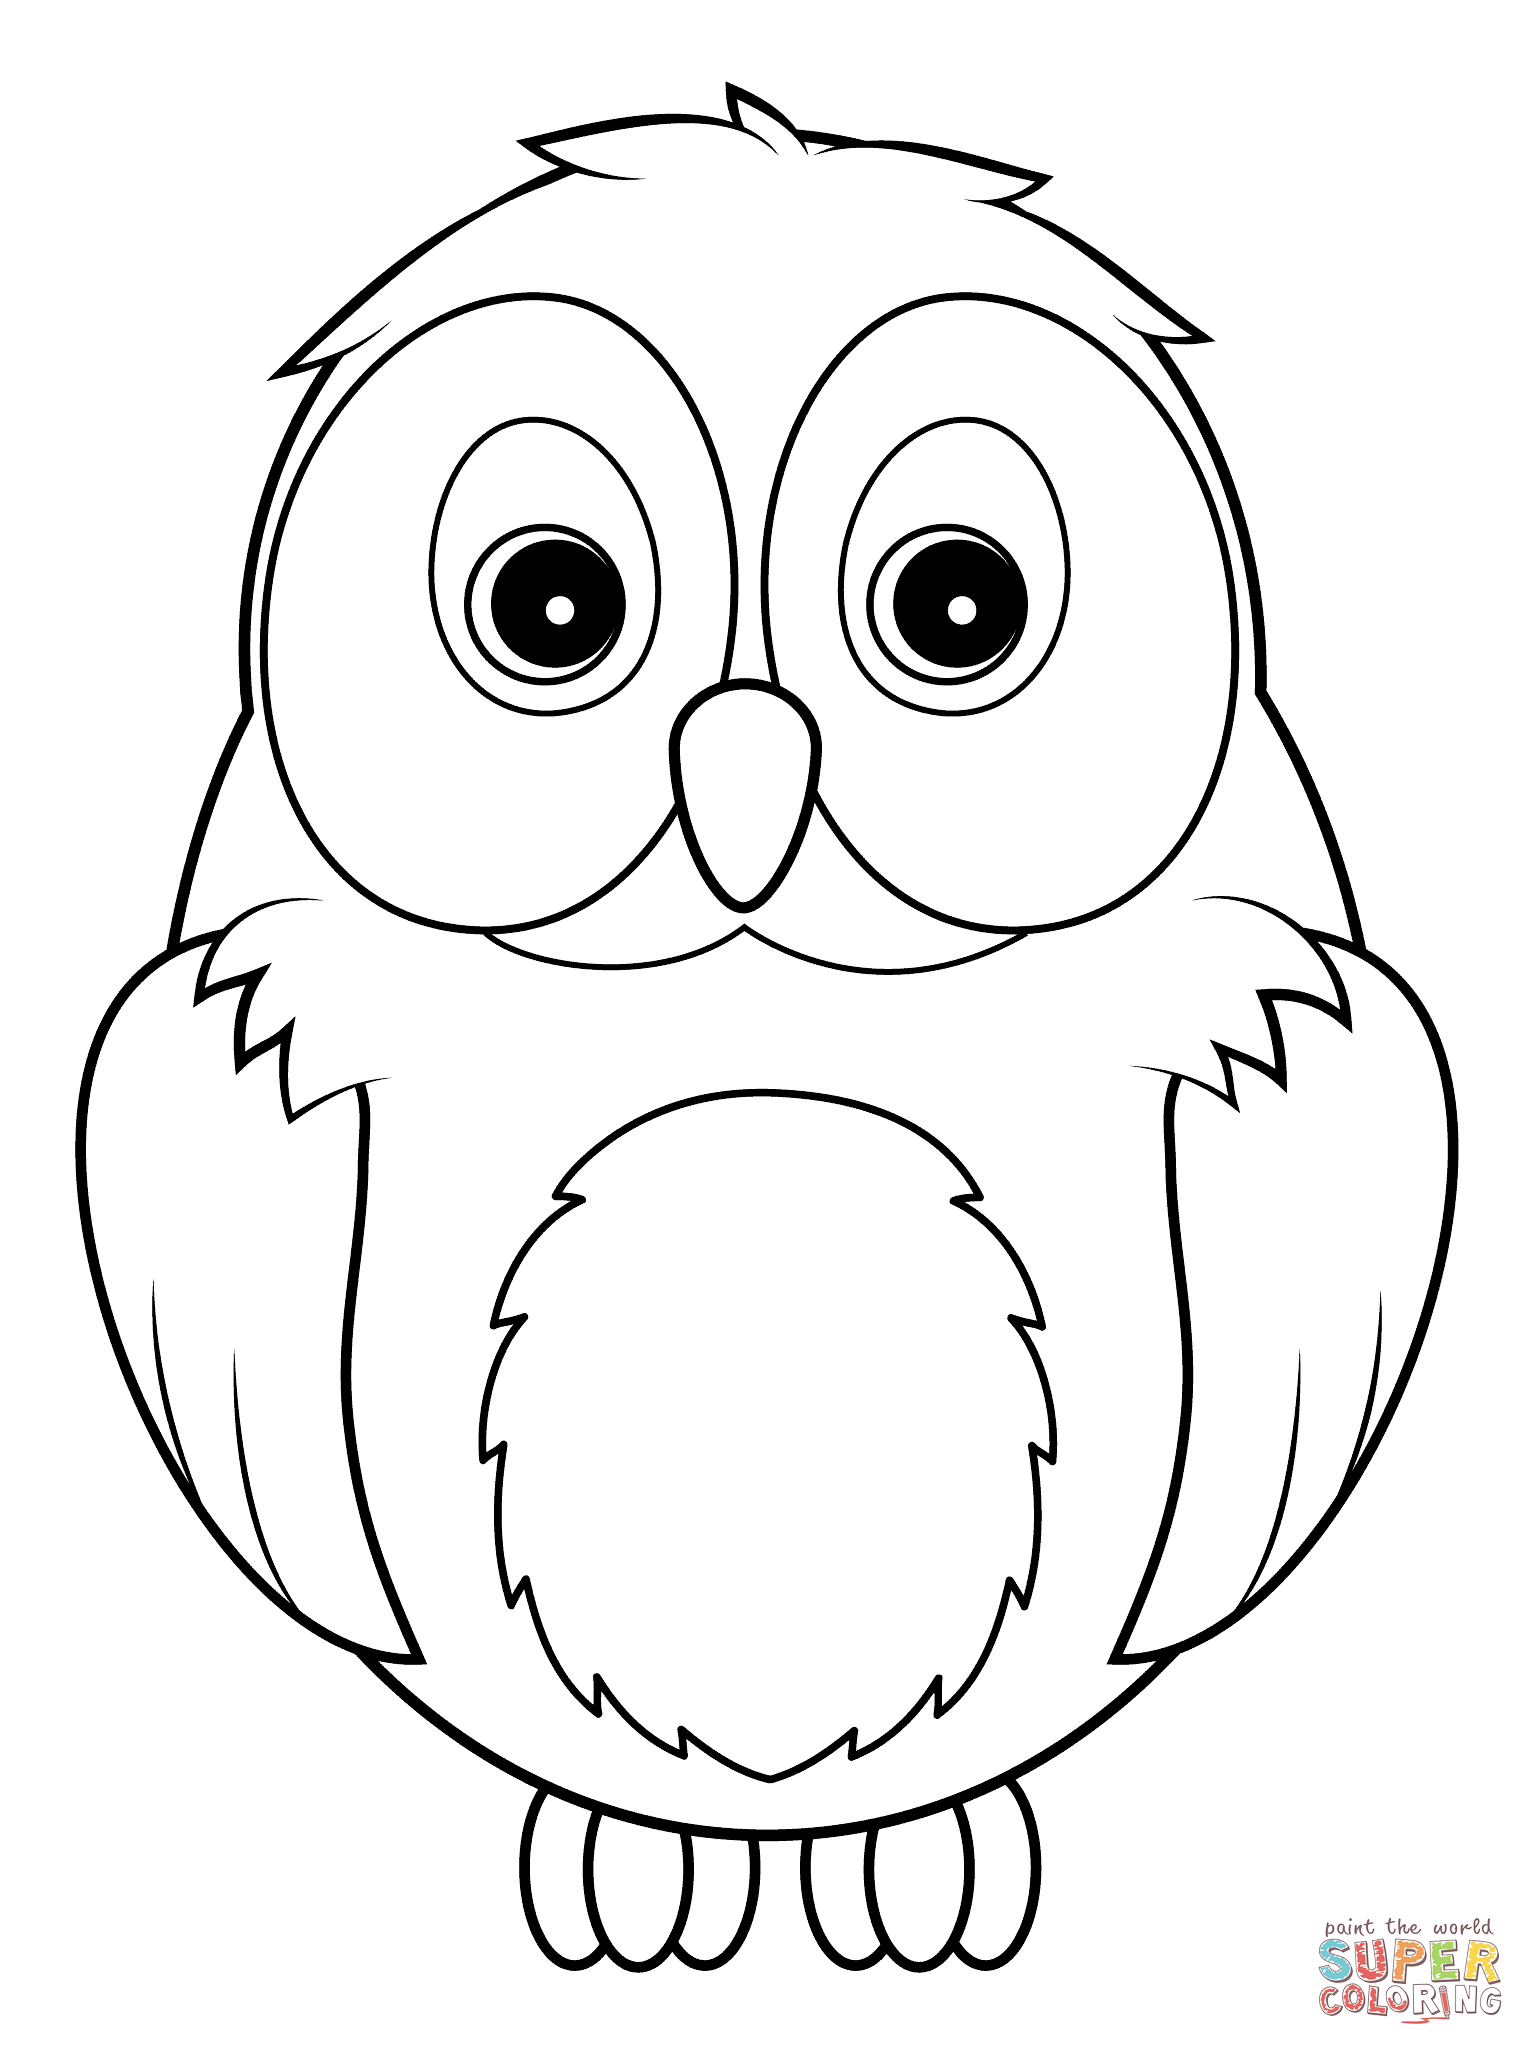 Owl coloring #18, Download drawings